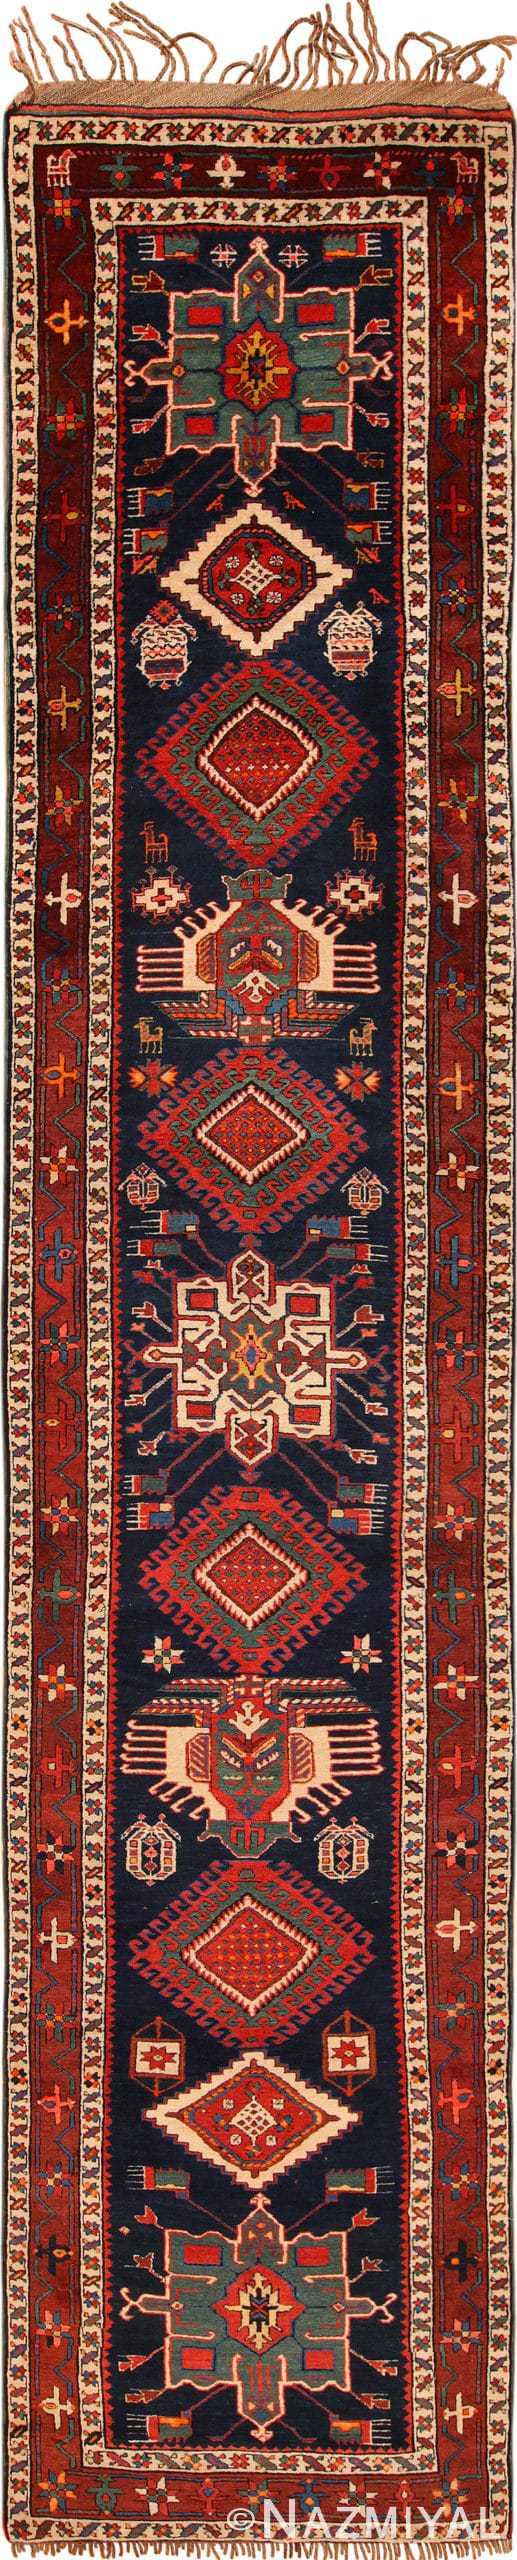 Full view Antique Northwest Persian Runner rug 70040 by Nazmiyal